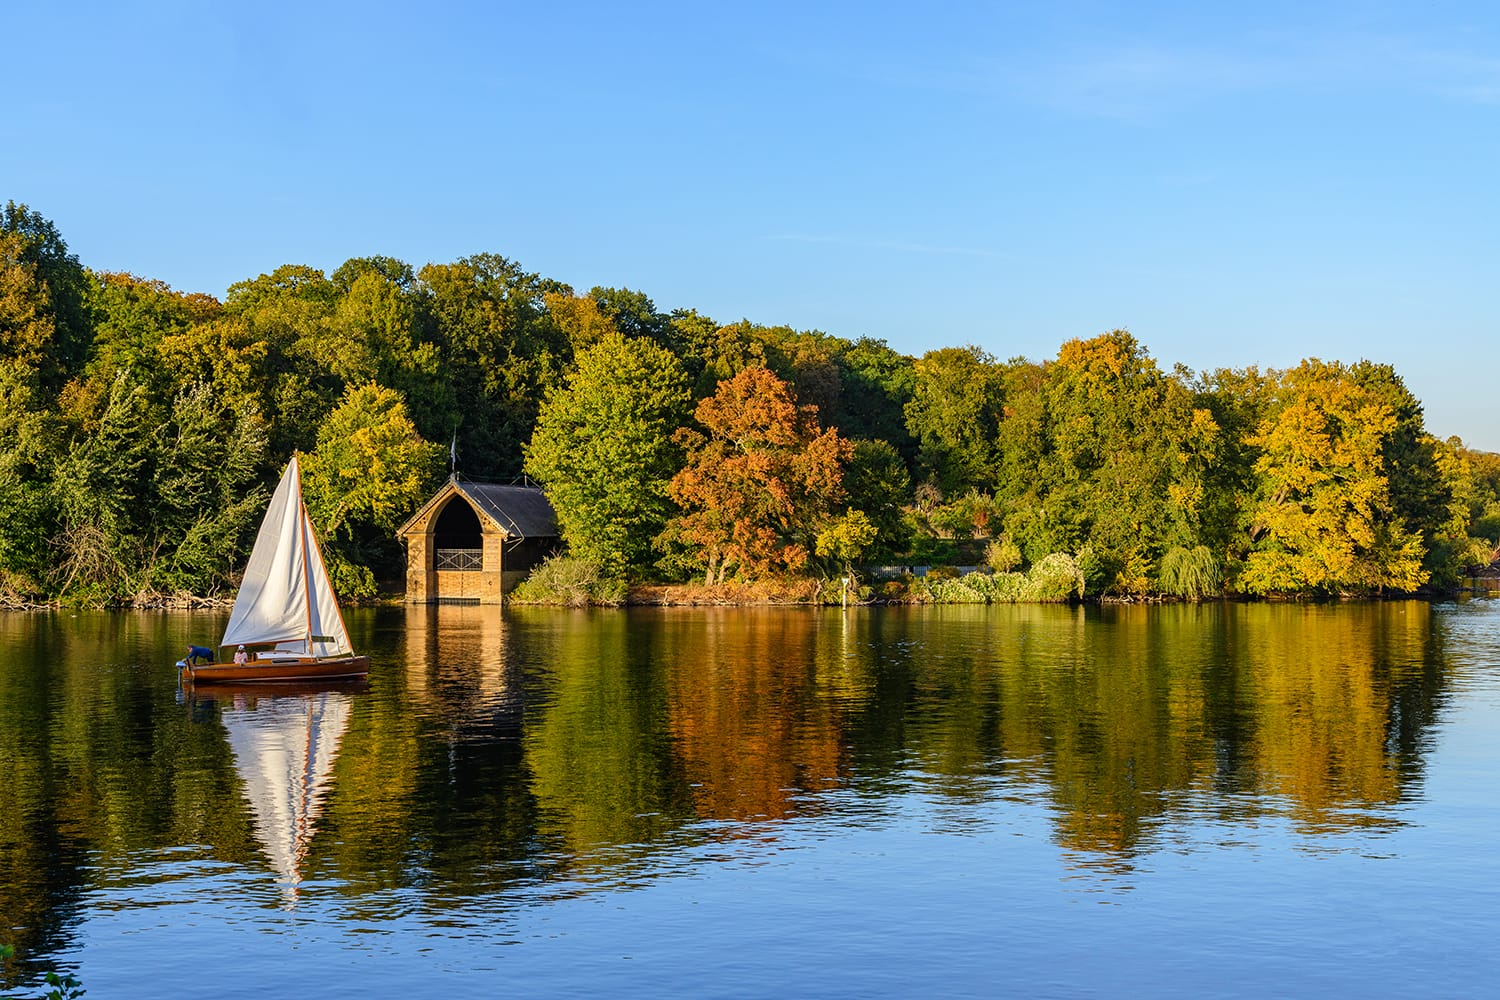 Boat on Wannsee in Berlin, Germany